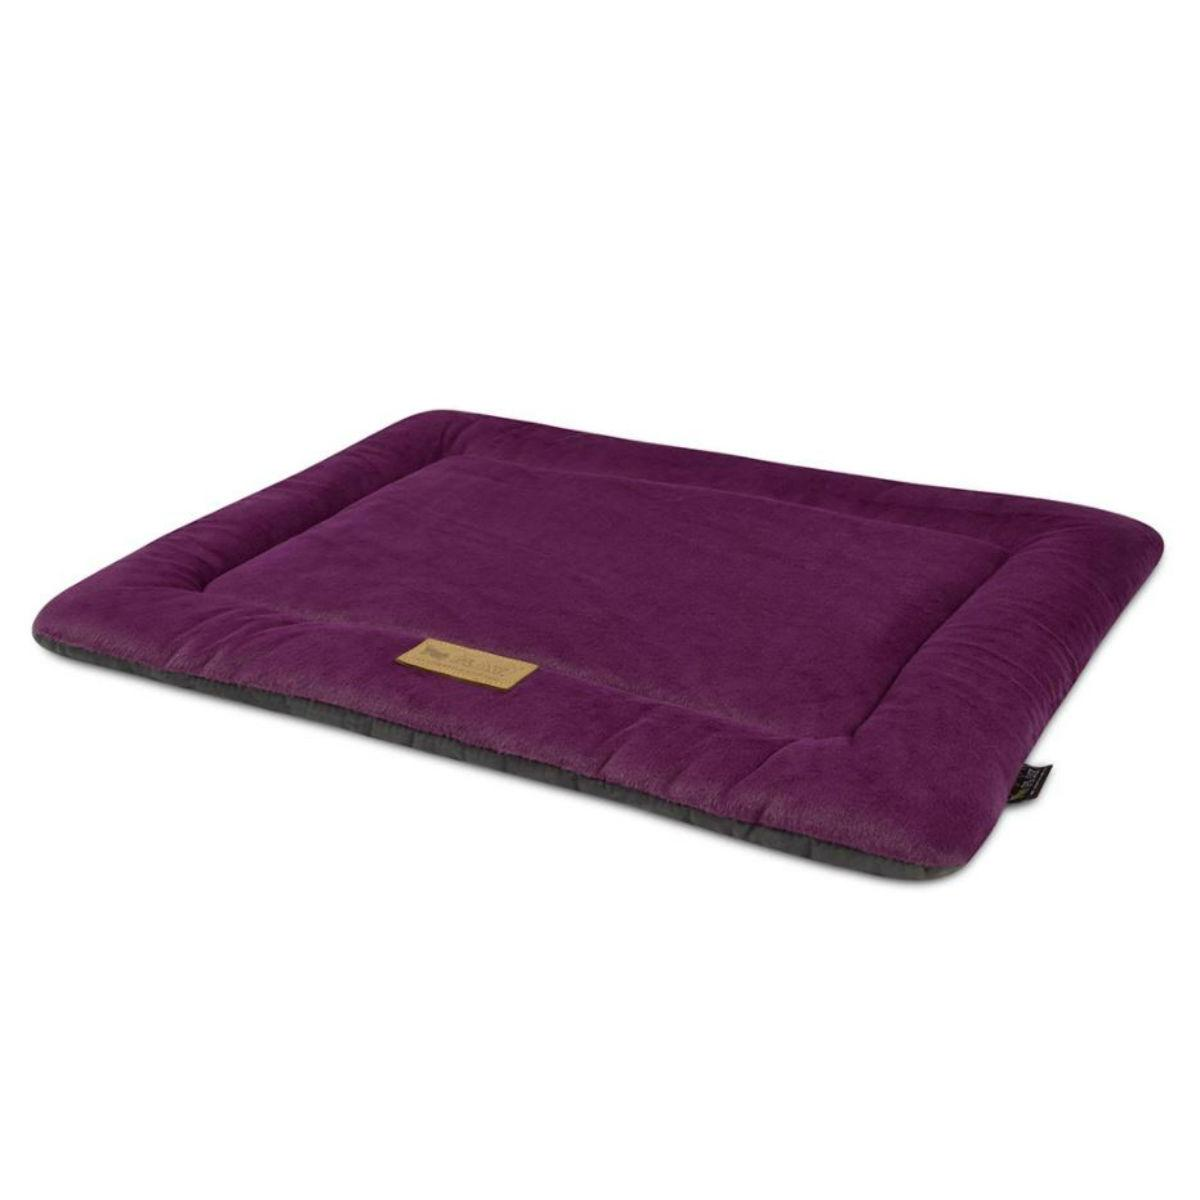 P.L.A.Y. Chill Pad Dog Bed - Plum